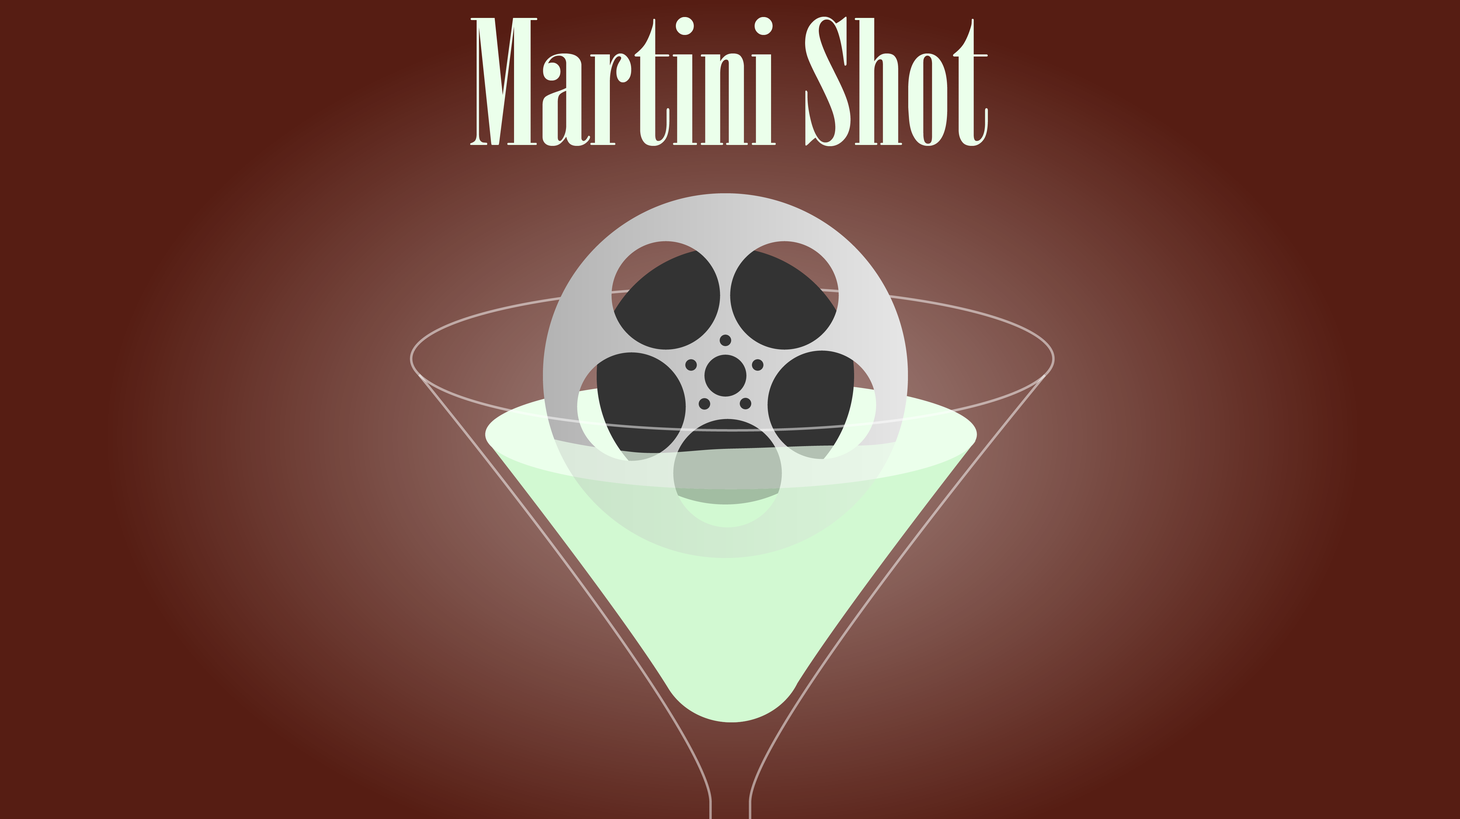 This is Rob Long and on today's Martini Shot I talk about the true pioneers in the areas of film technology and computer graphics and making things look like other things: the plastic surgeons.